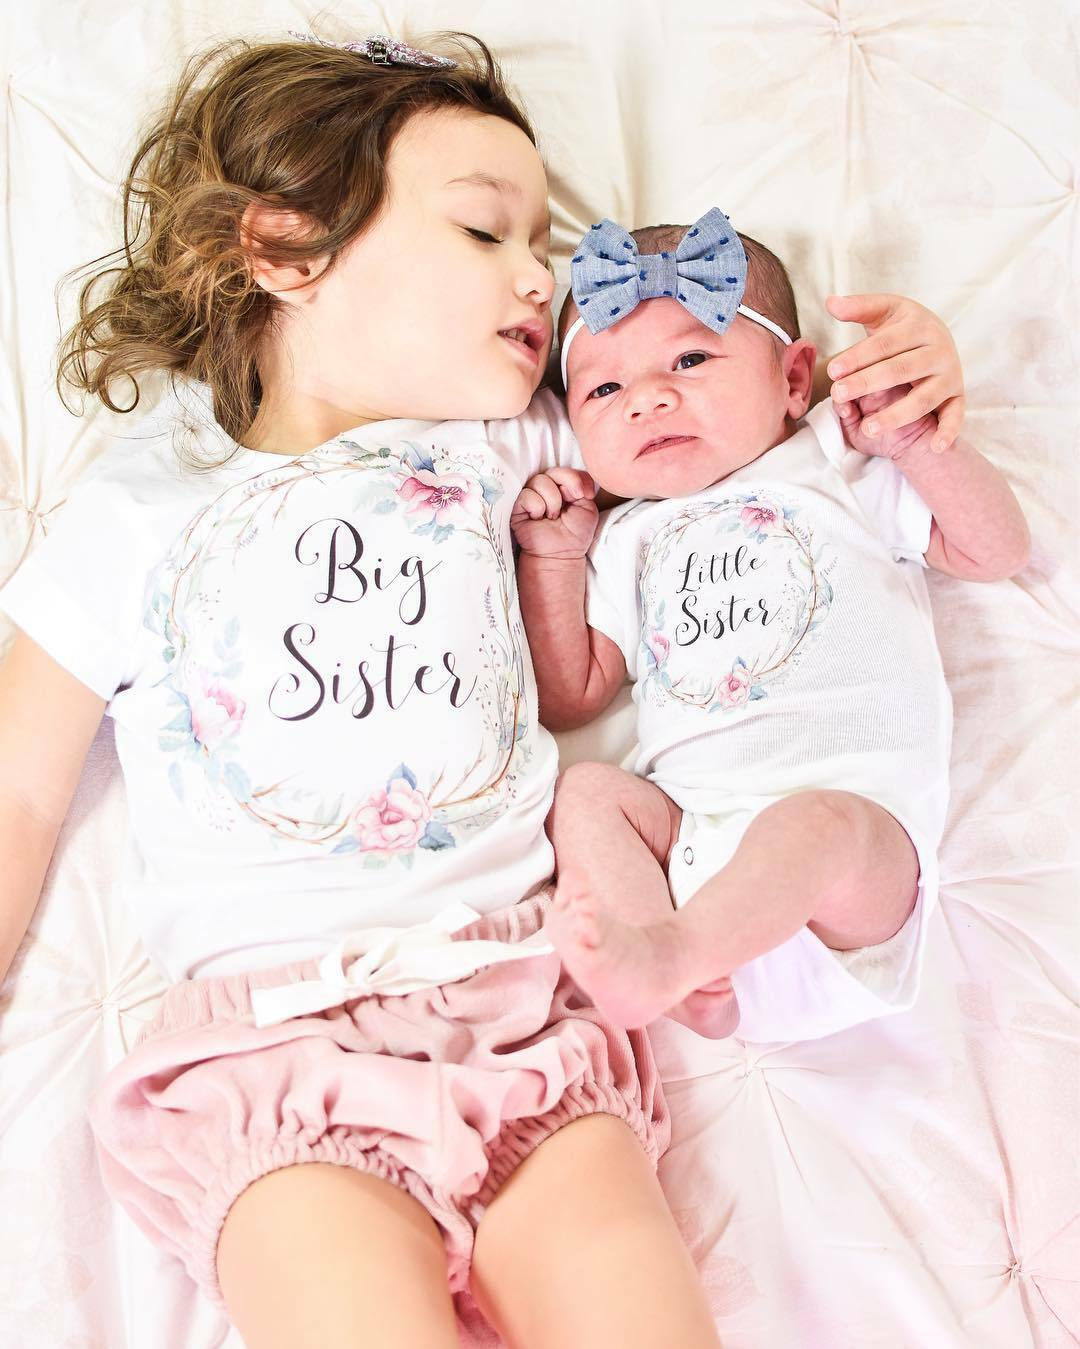 Baby Clothes Summer Baby Kids Girls Little Big Sister Match Clothes Jumpsuit Romper Outfits T-Shirt Family Matching Outfits